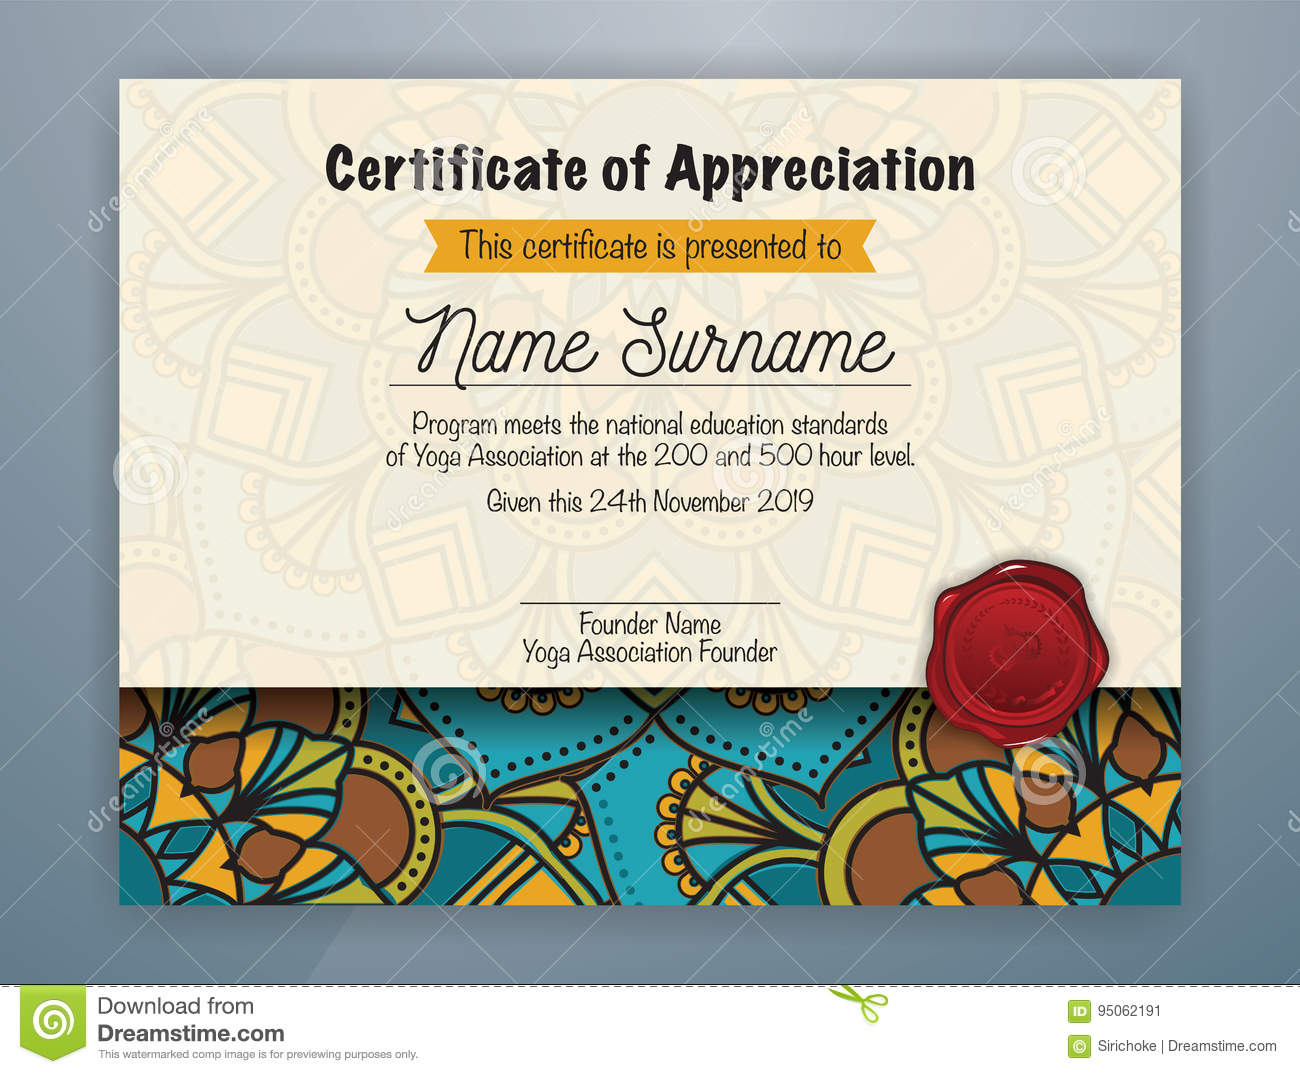 Certificate of appreciation marine corps template image certificate of appreciation marine corps template gallery usmc certificate of commendation template gallery templates certificate of 1betcityfo Images